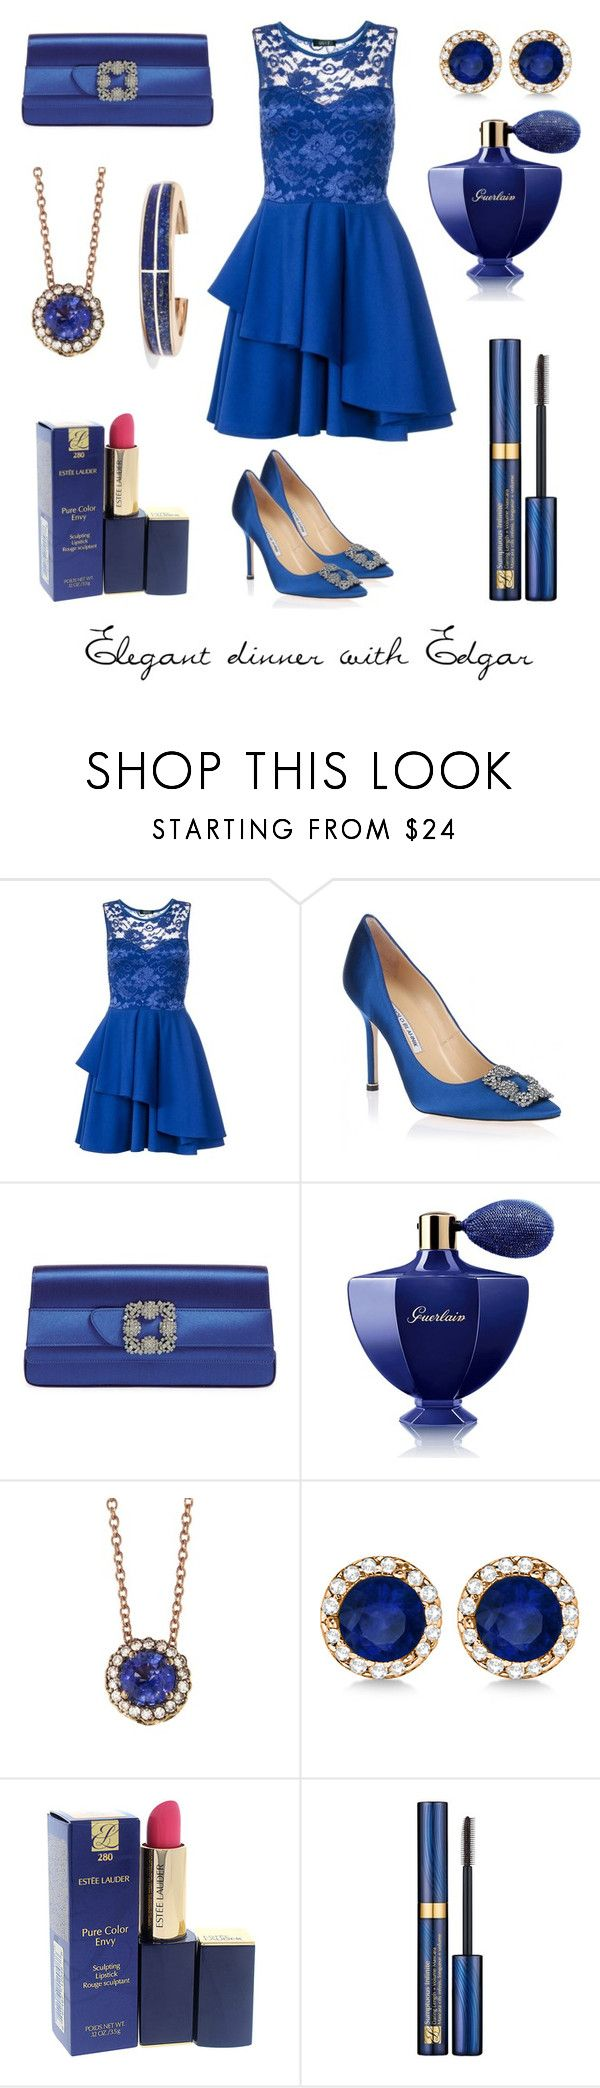 """""""SWD Blood In Roses  - dinner with Edgar"""" by thatshippertypefangirl ❤ liked on Polyvore featuring Dorothy Perkins, Manolo Blahnik, Guerlain, Selim Mouzannar, Allurez, Estée Lauder and Pamela Love"""